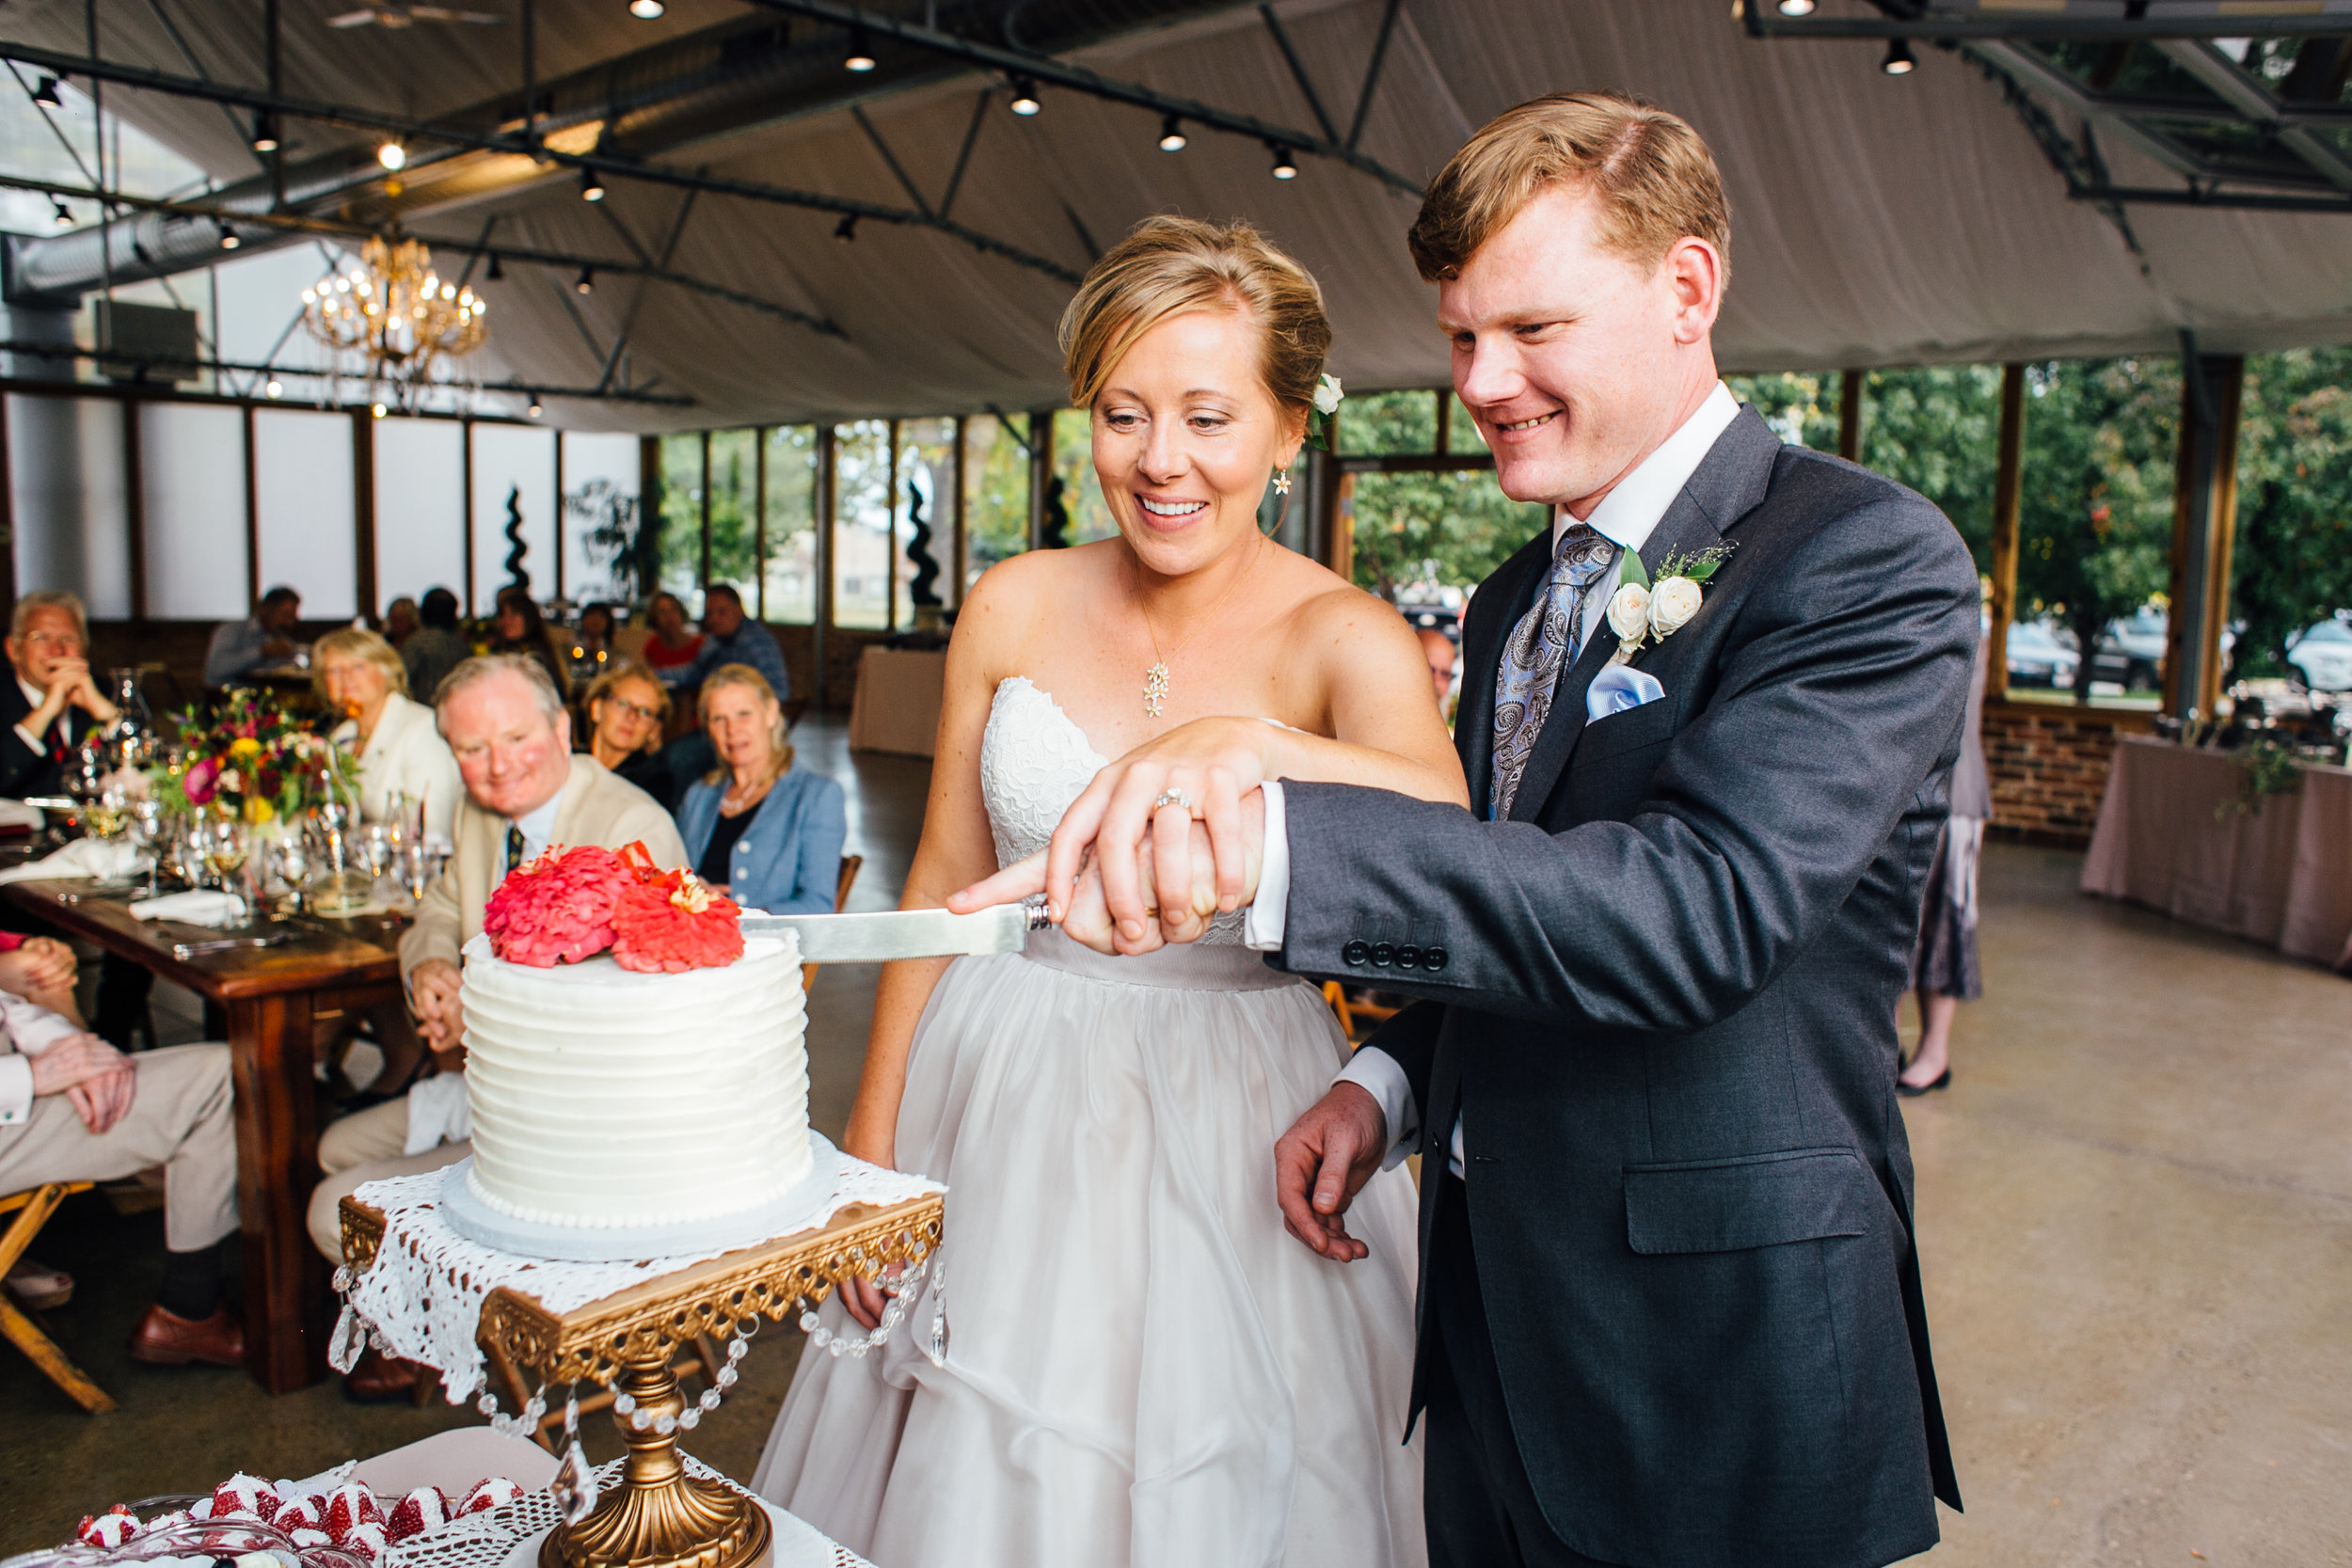 Bride and Groom Cut Cake Reception Brookside Gardens Berthoud Colorado Wedding